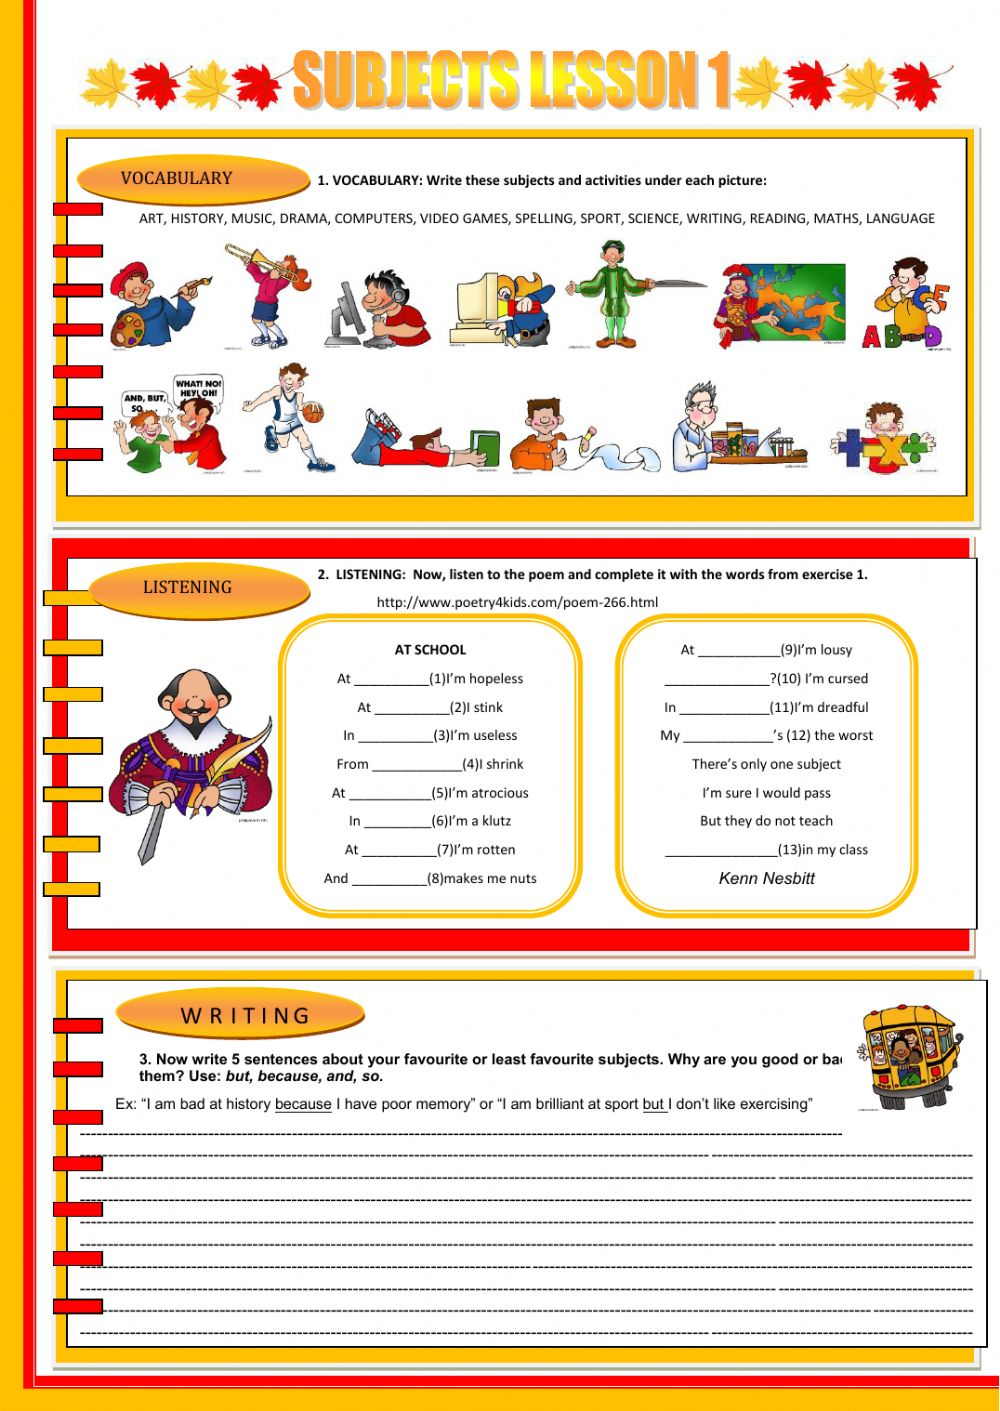 worksheet Subject Worksheets school subjects interactive worksheets worksheet subjects